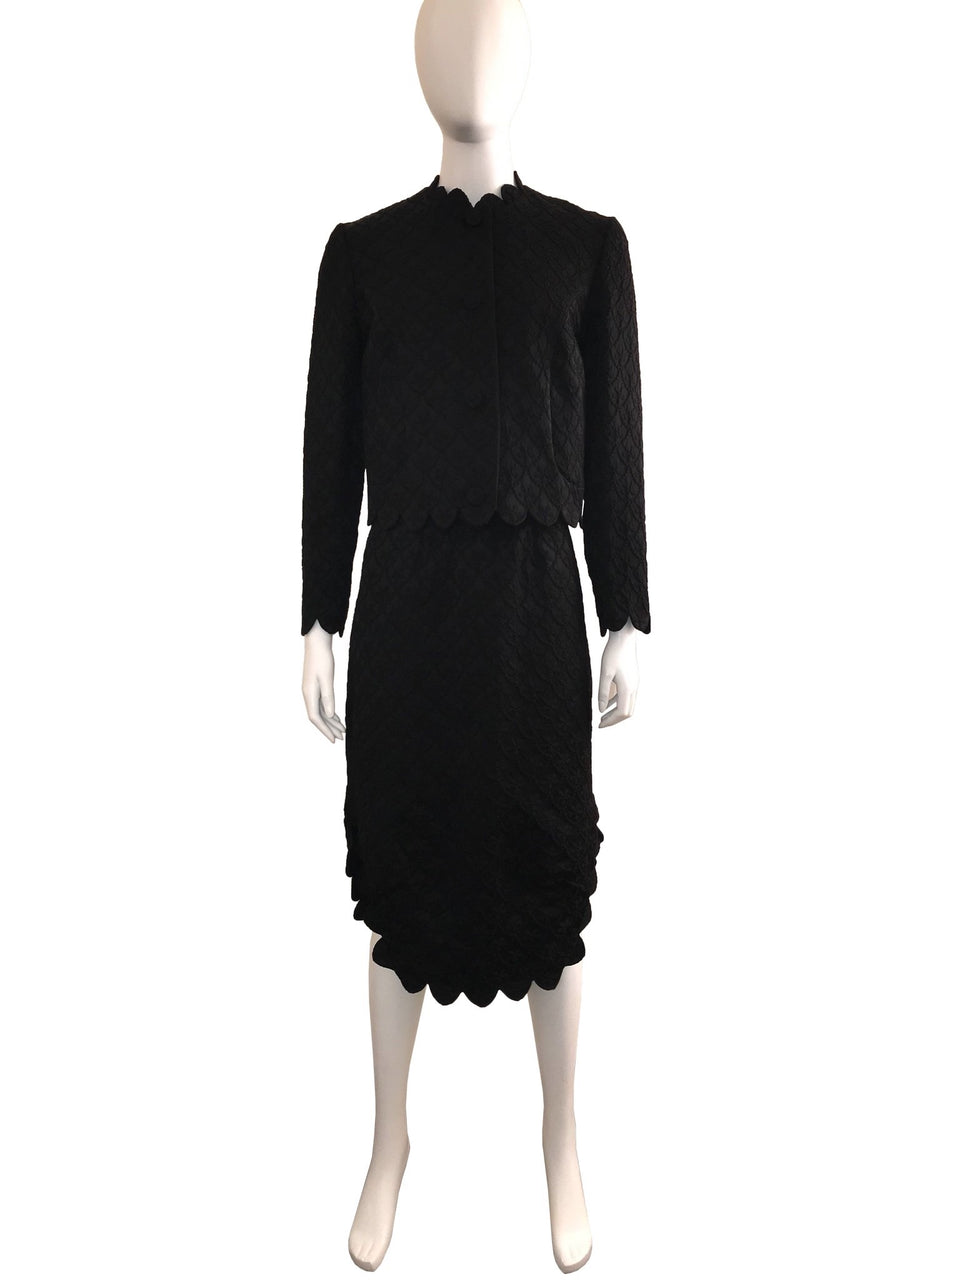 Textured Black Scalloped Edge 2-Piece Dress & Jacket